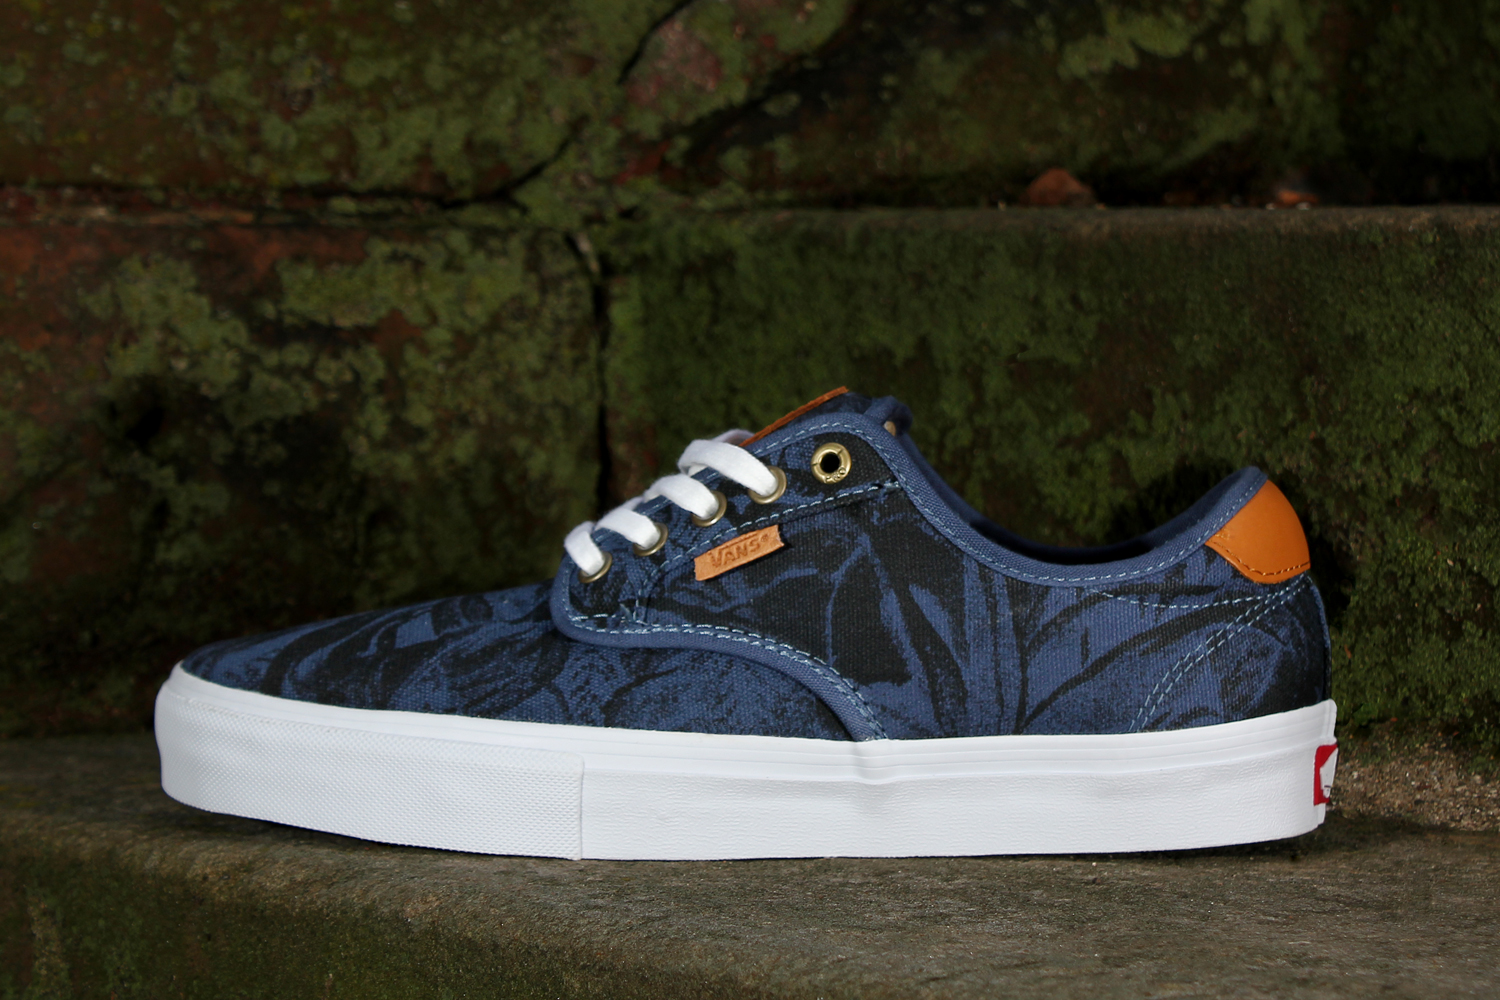 a closer look at the vans 2013 fall chima ferguson pro hawaiian